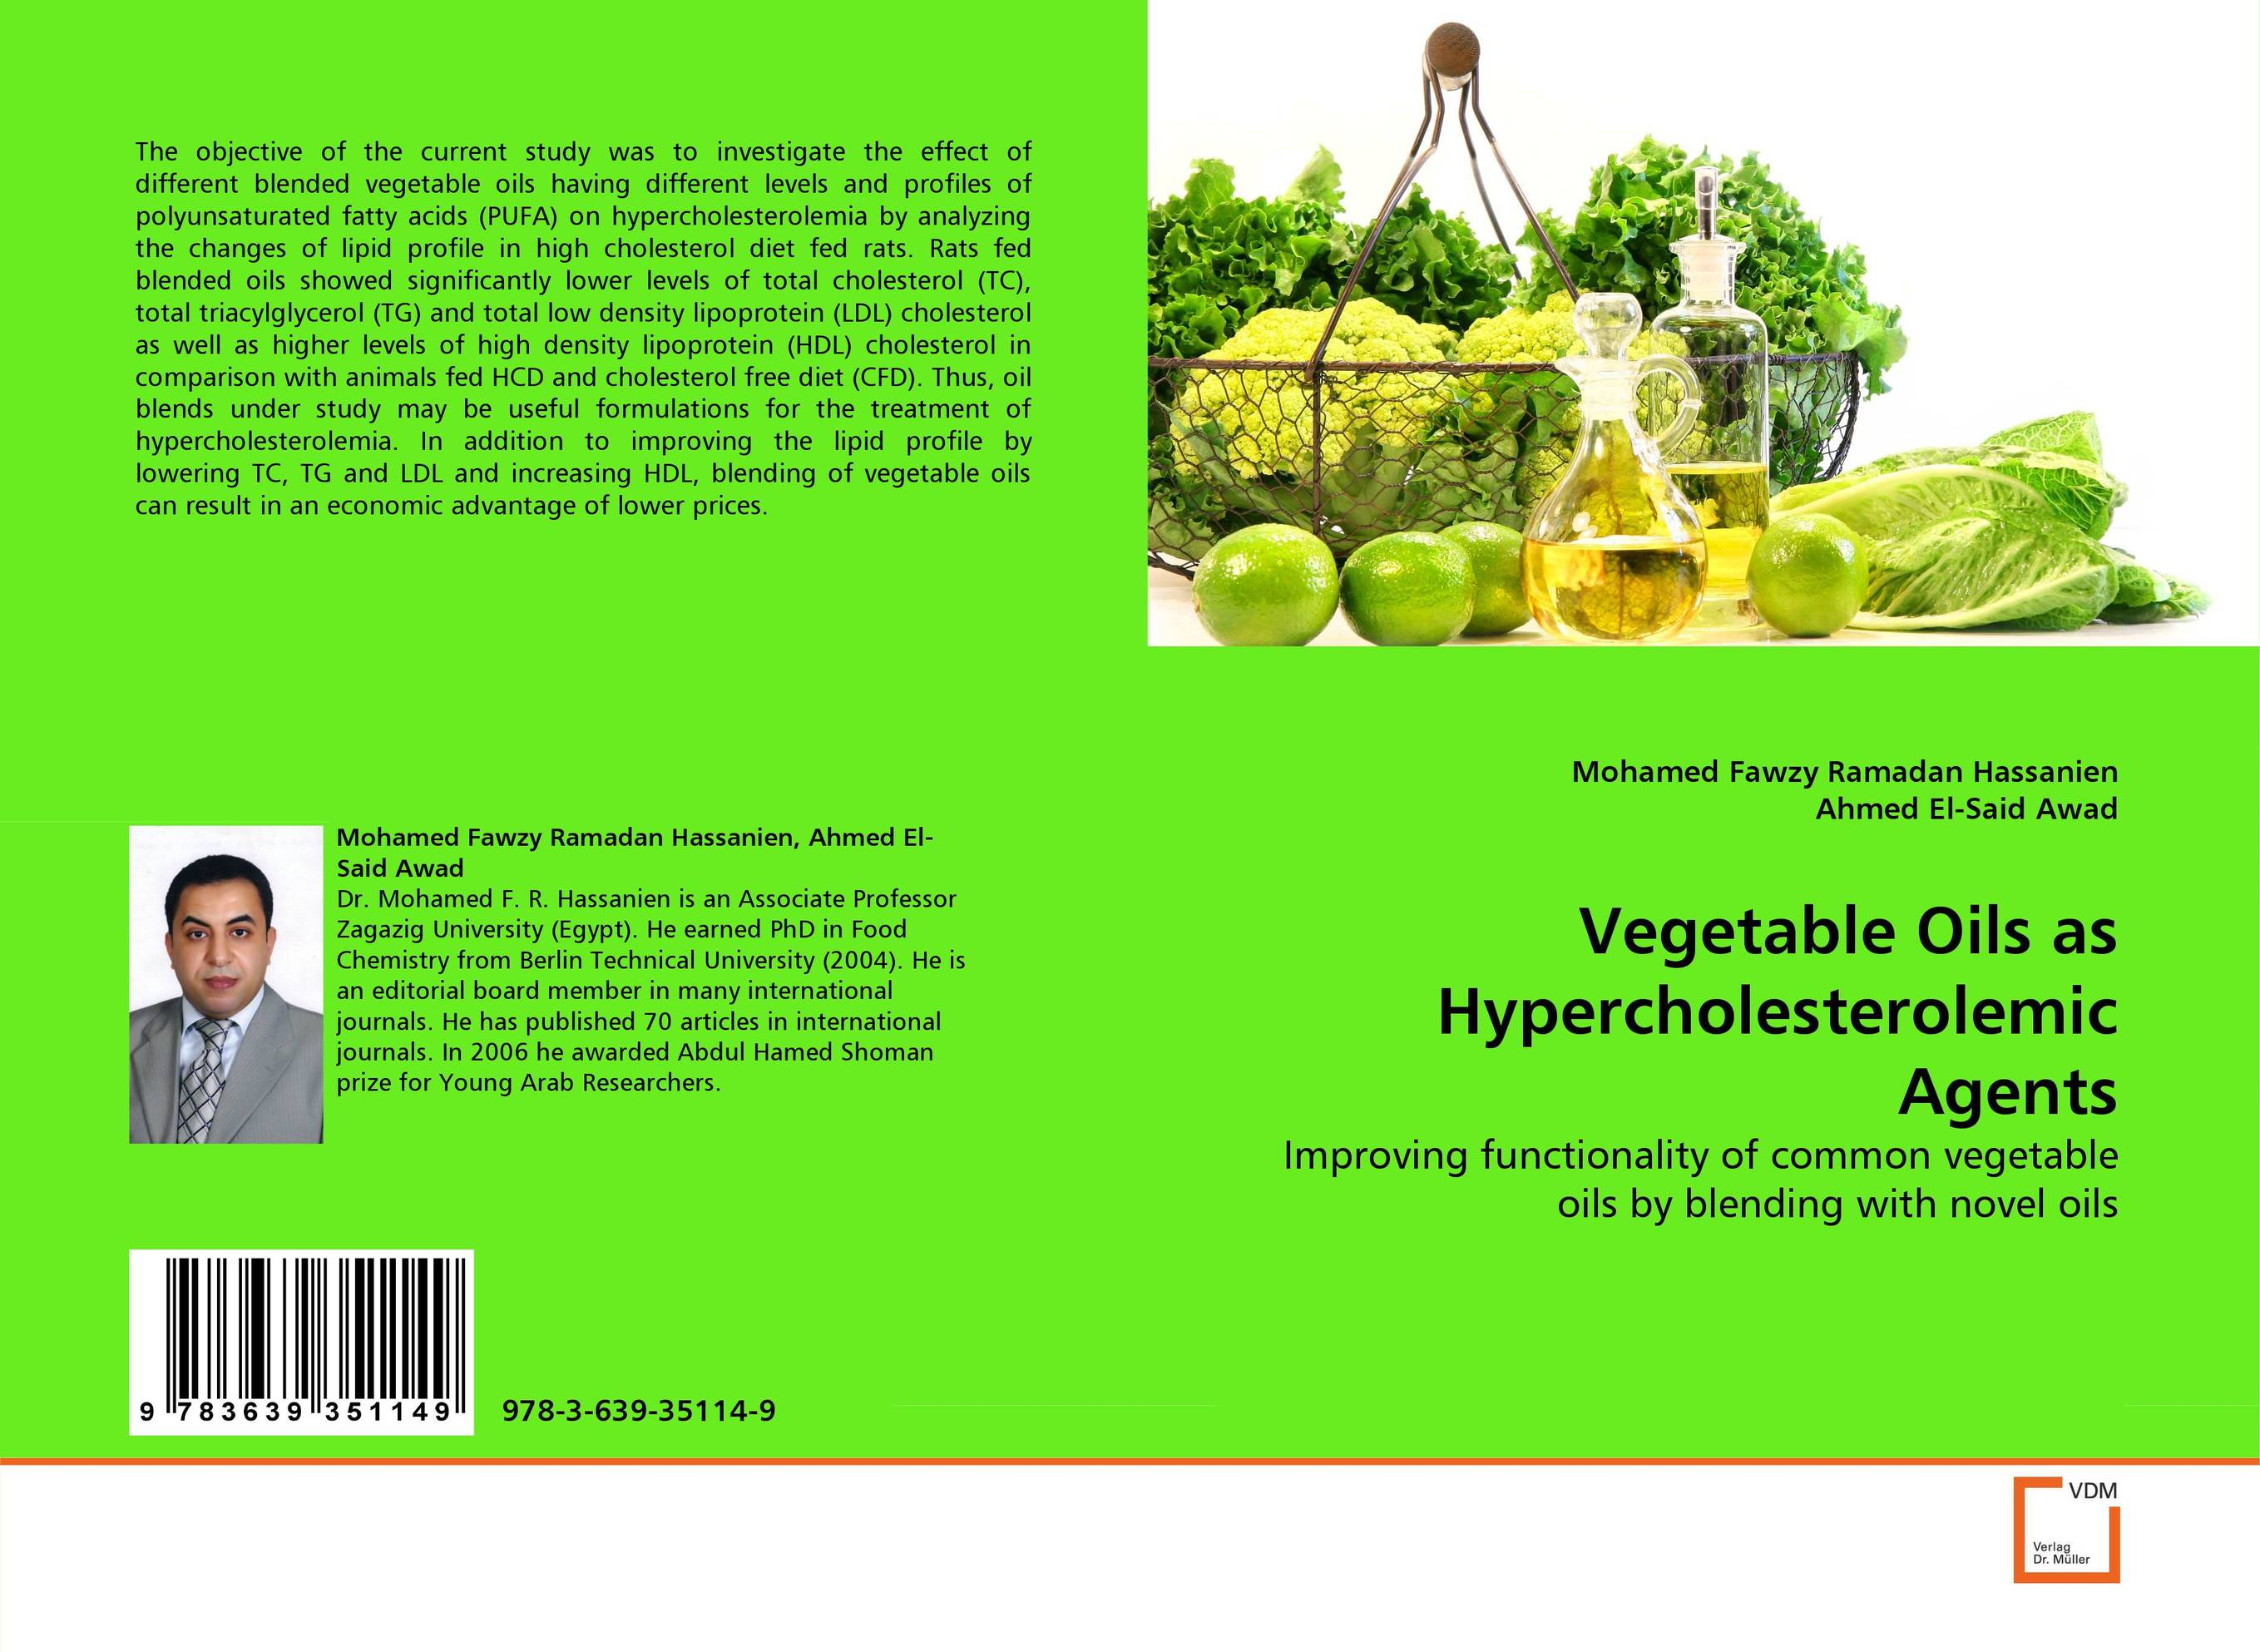 Vegetable Oils as Hypercholesterolemic Agents combinations between glycerol free fatty acids and acidulated oils